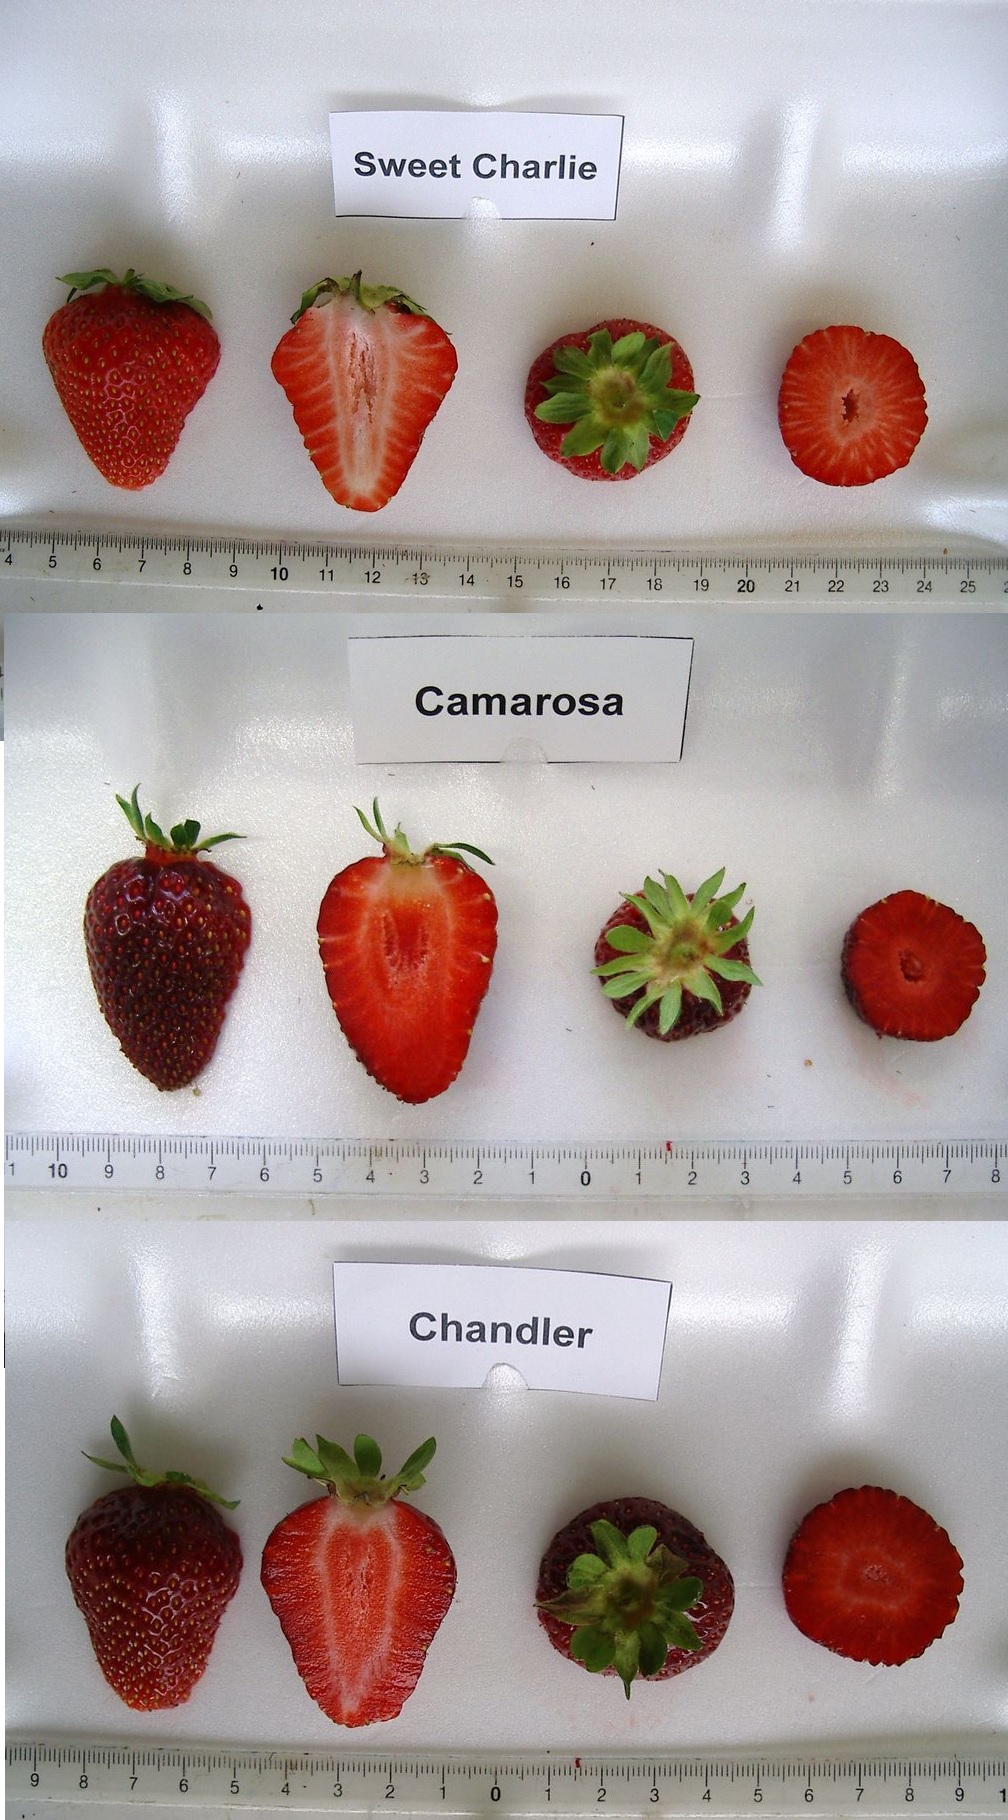 Common varieties in NC. Photo: Aurélie Petit (http://www.bordeaux.inra.fr/)